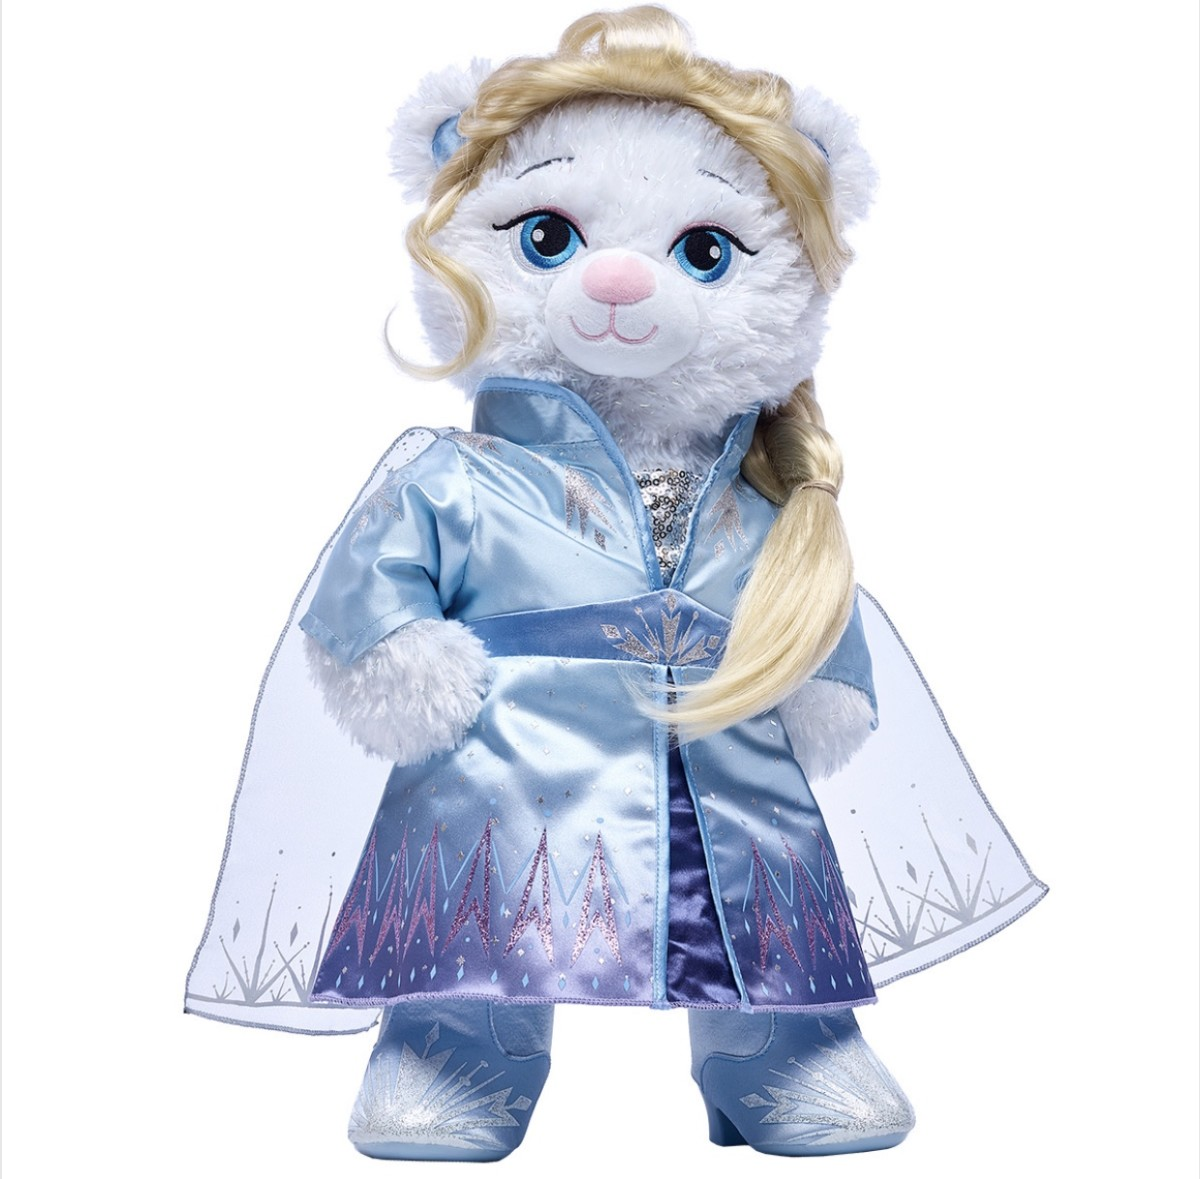 New Frozen 2 Collection at Build-A-Bear Workshop 3